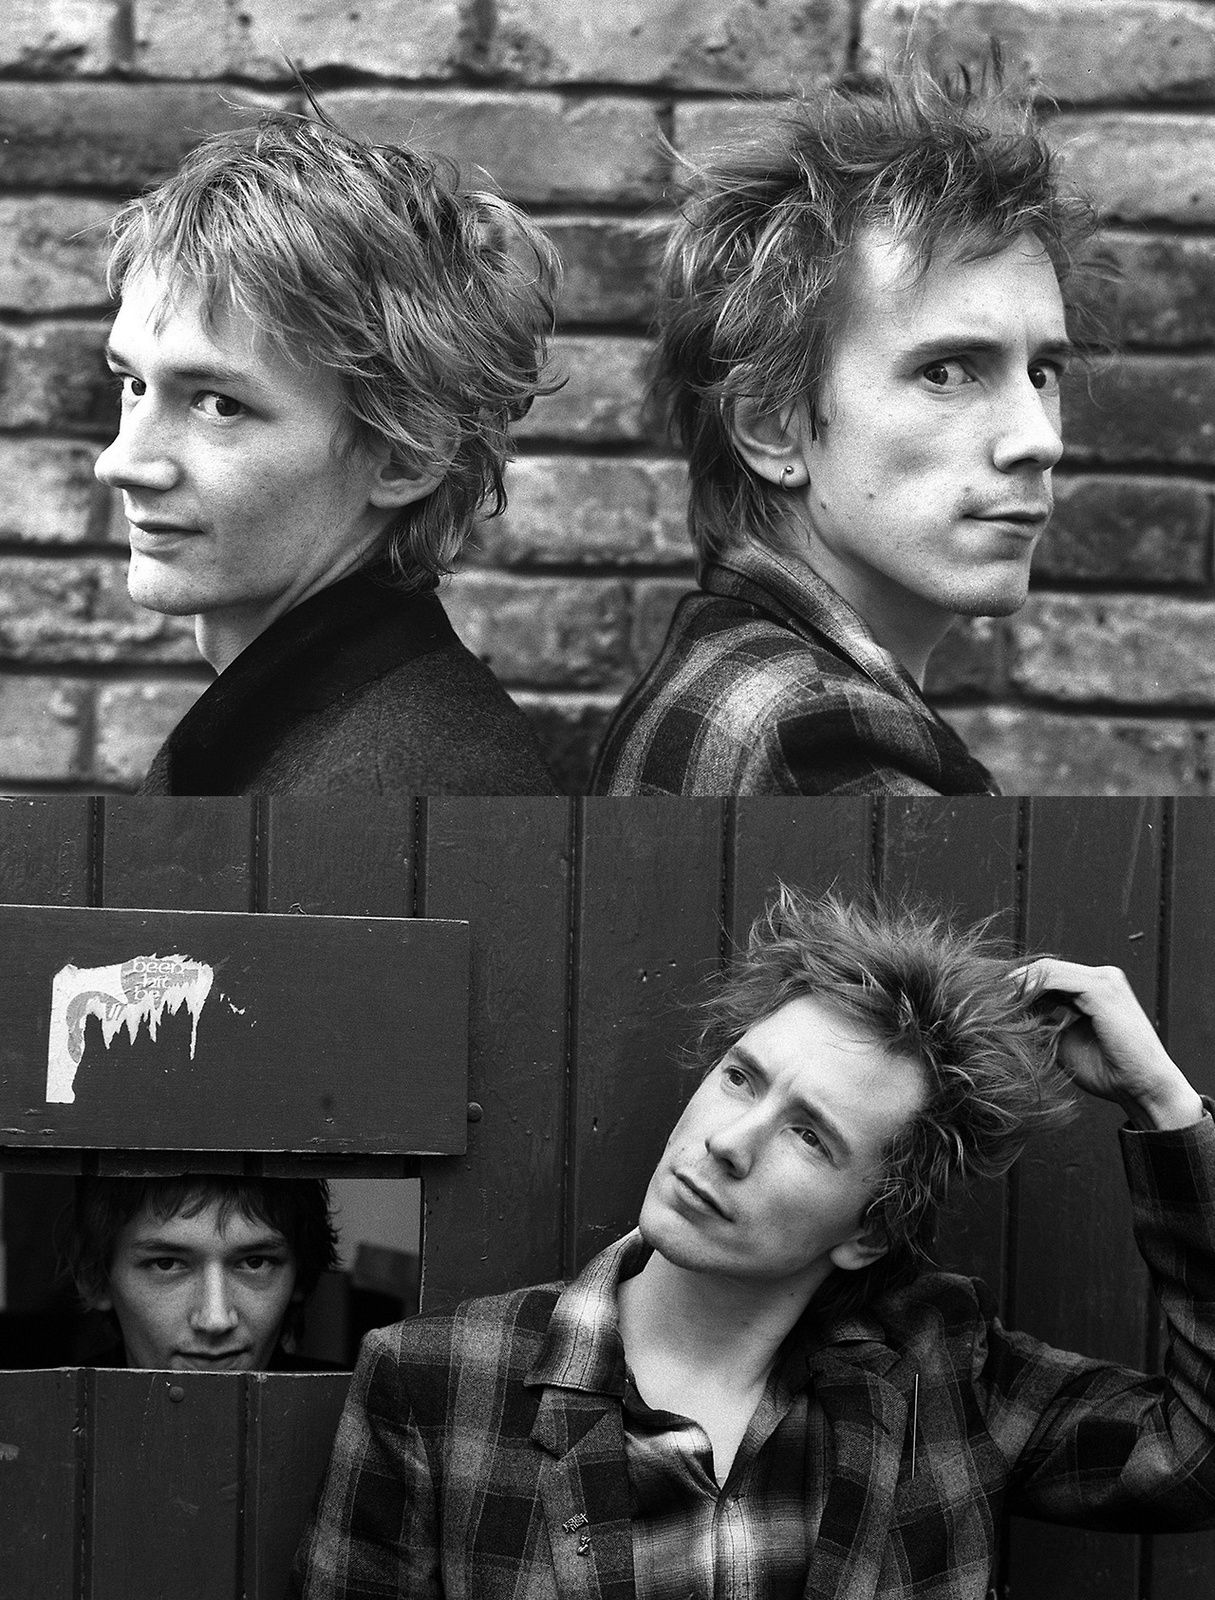 Johnny Rotten and Keith Levene (1981)